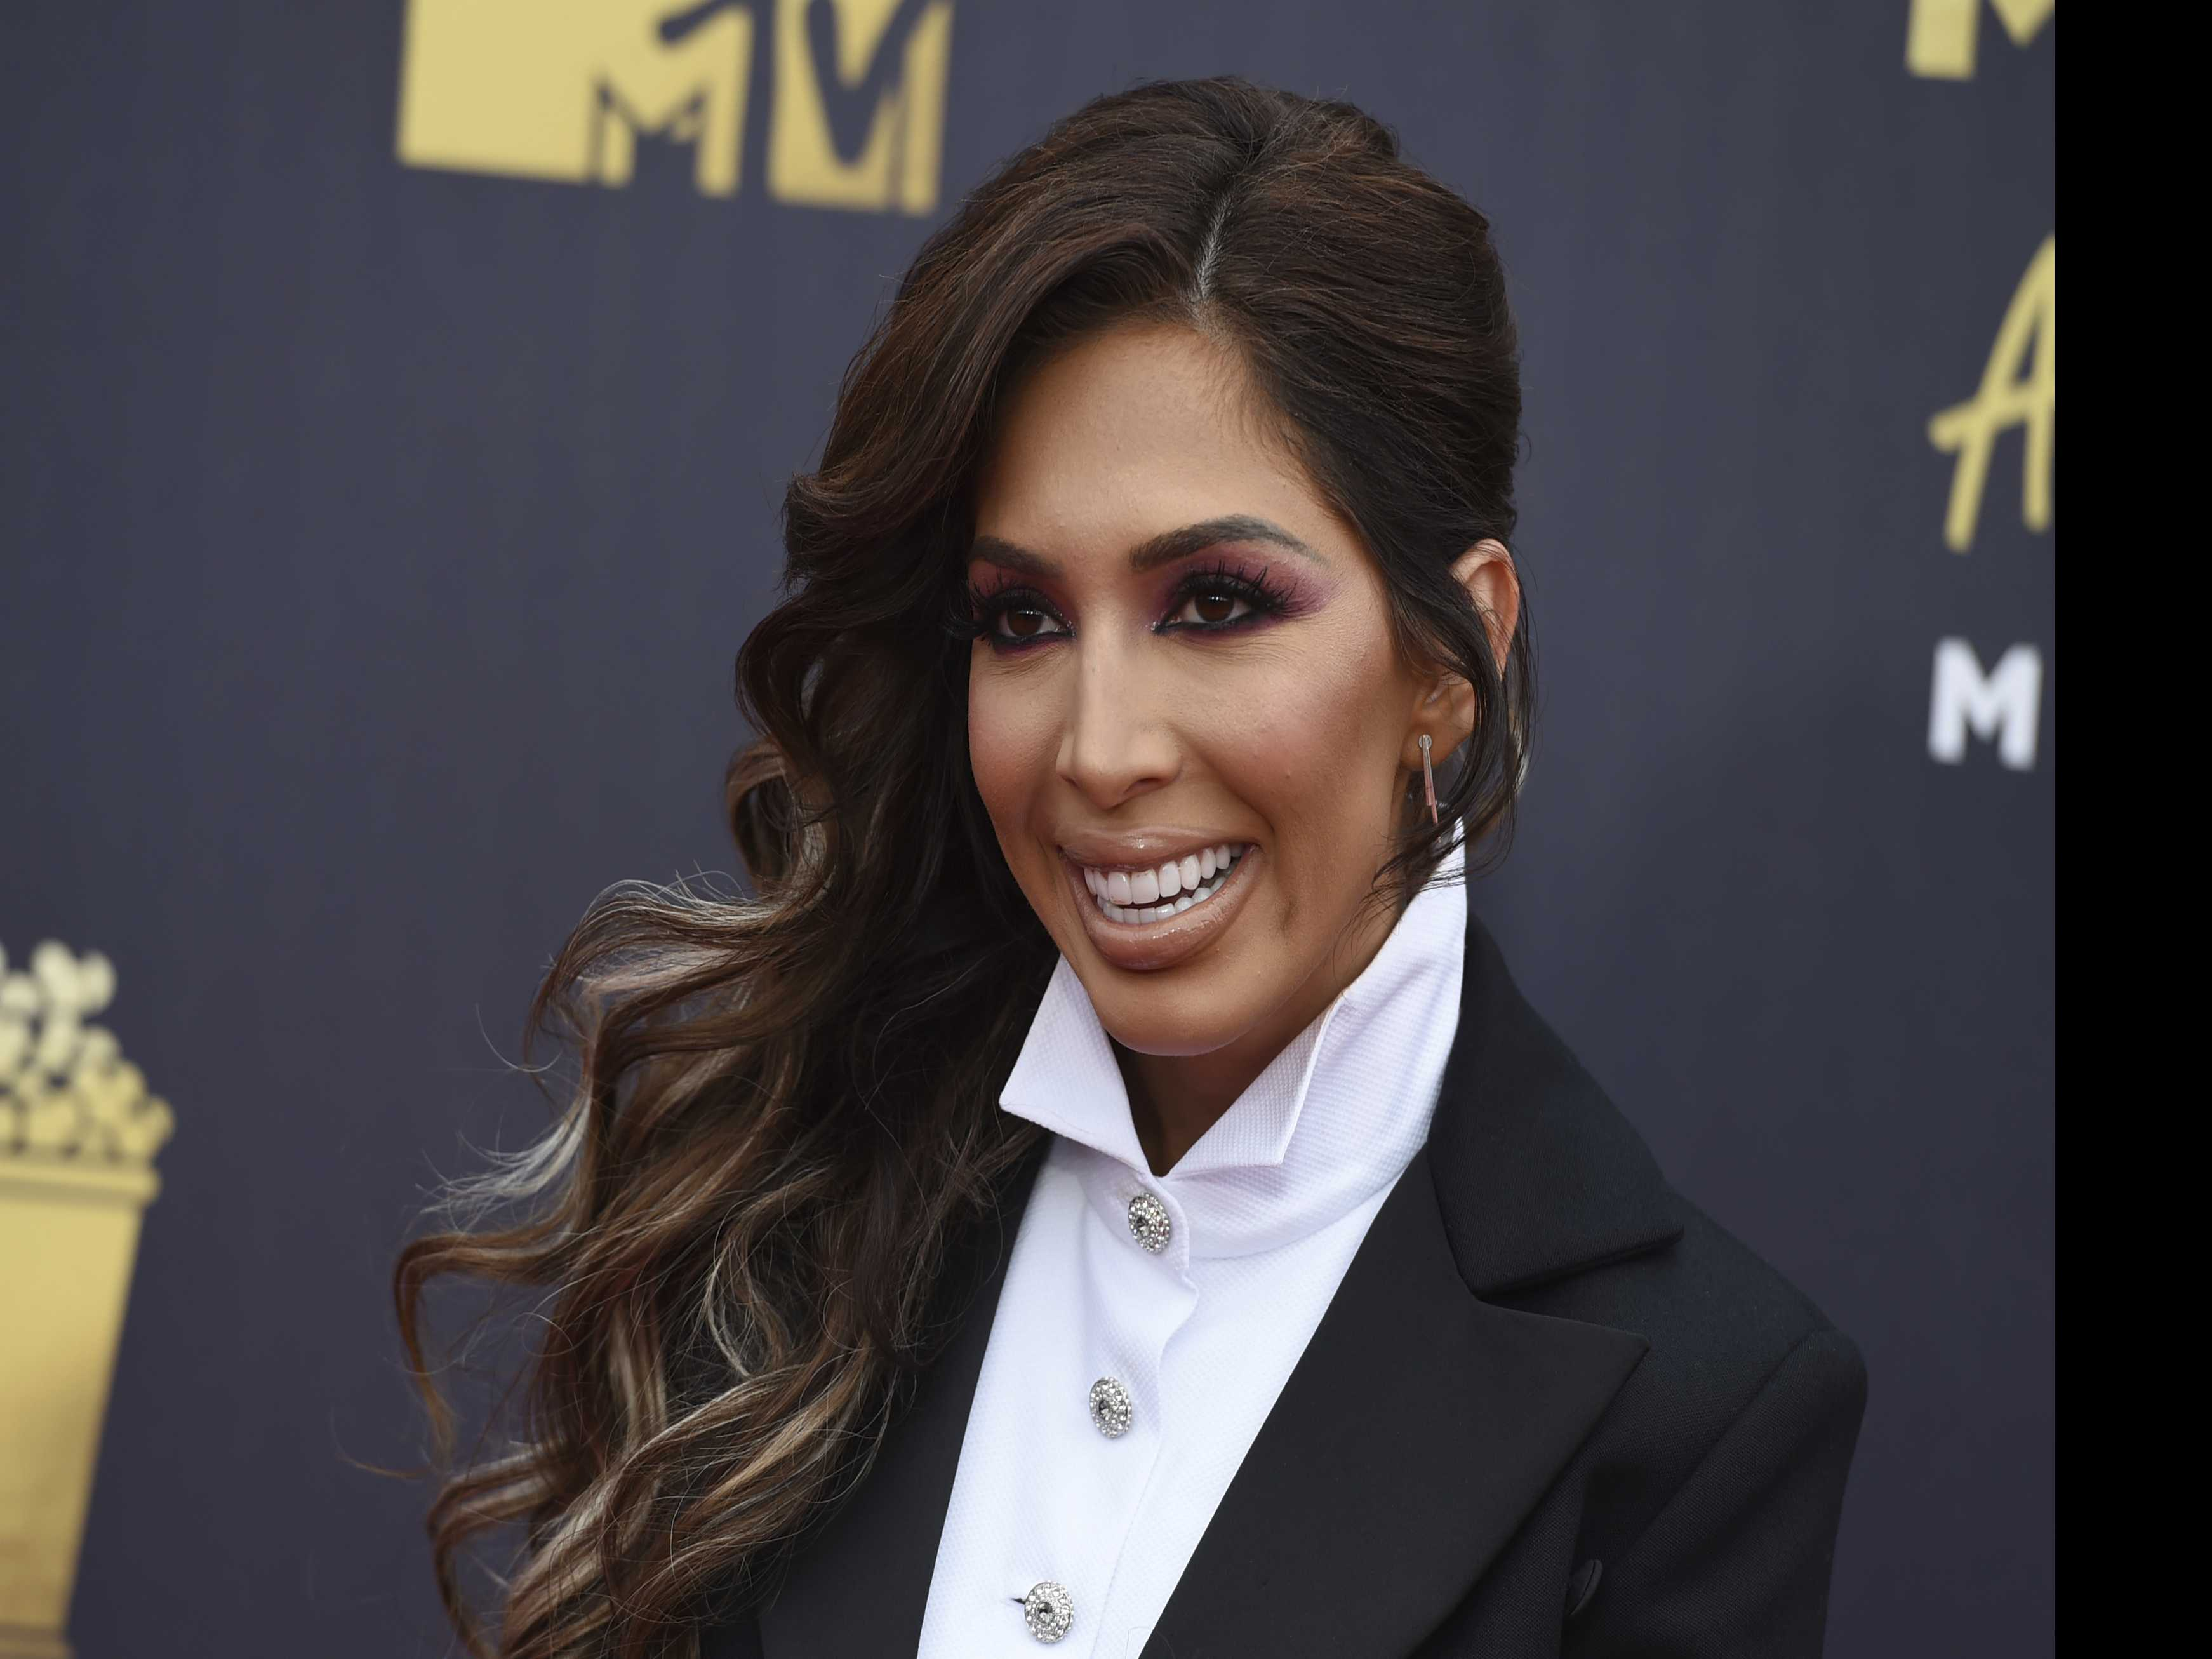 TV's Farrah Abraham Pleads Guilty to Resisting Police